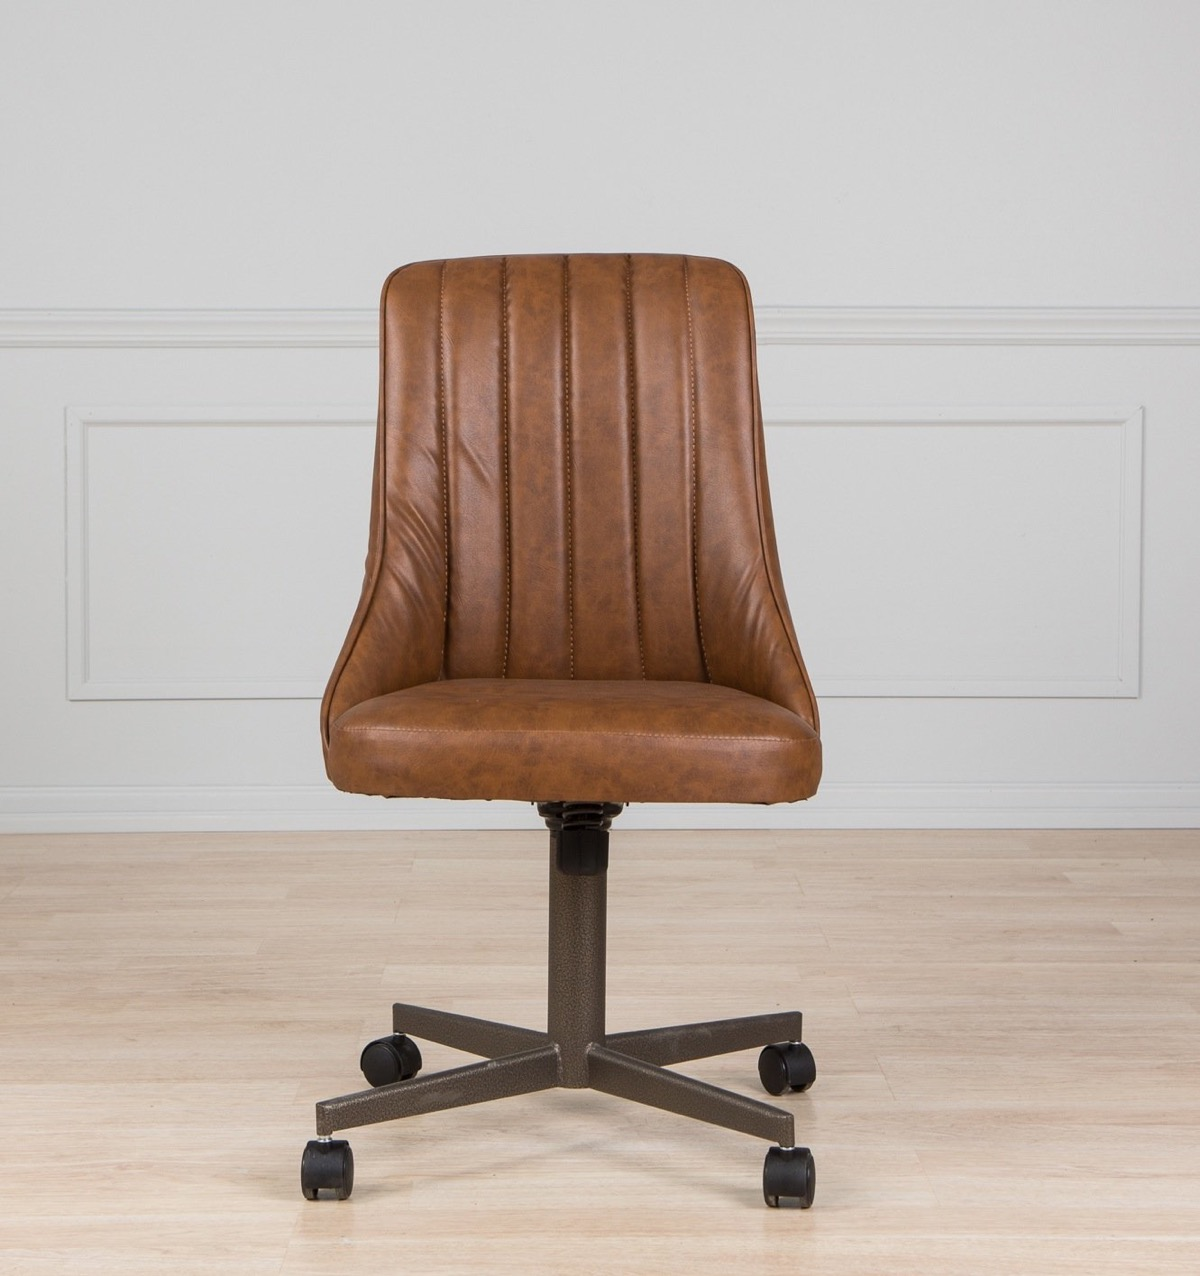 Kitchen-Chair-With-Casters-Brown-Leather-Rolling-Seating-Armless